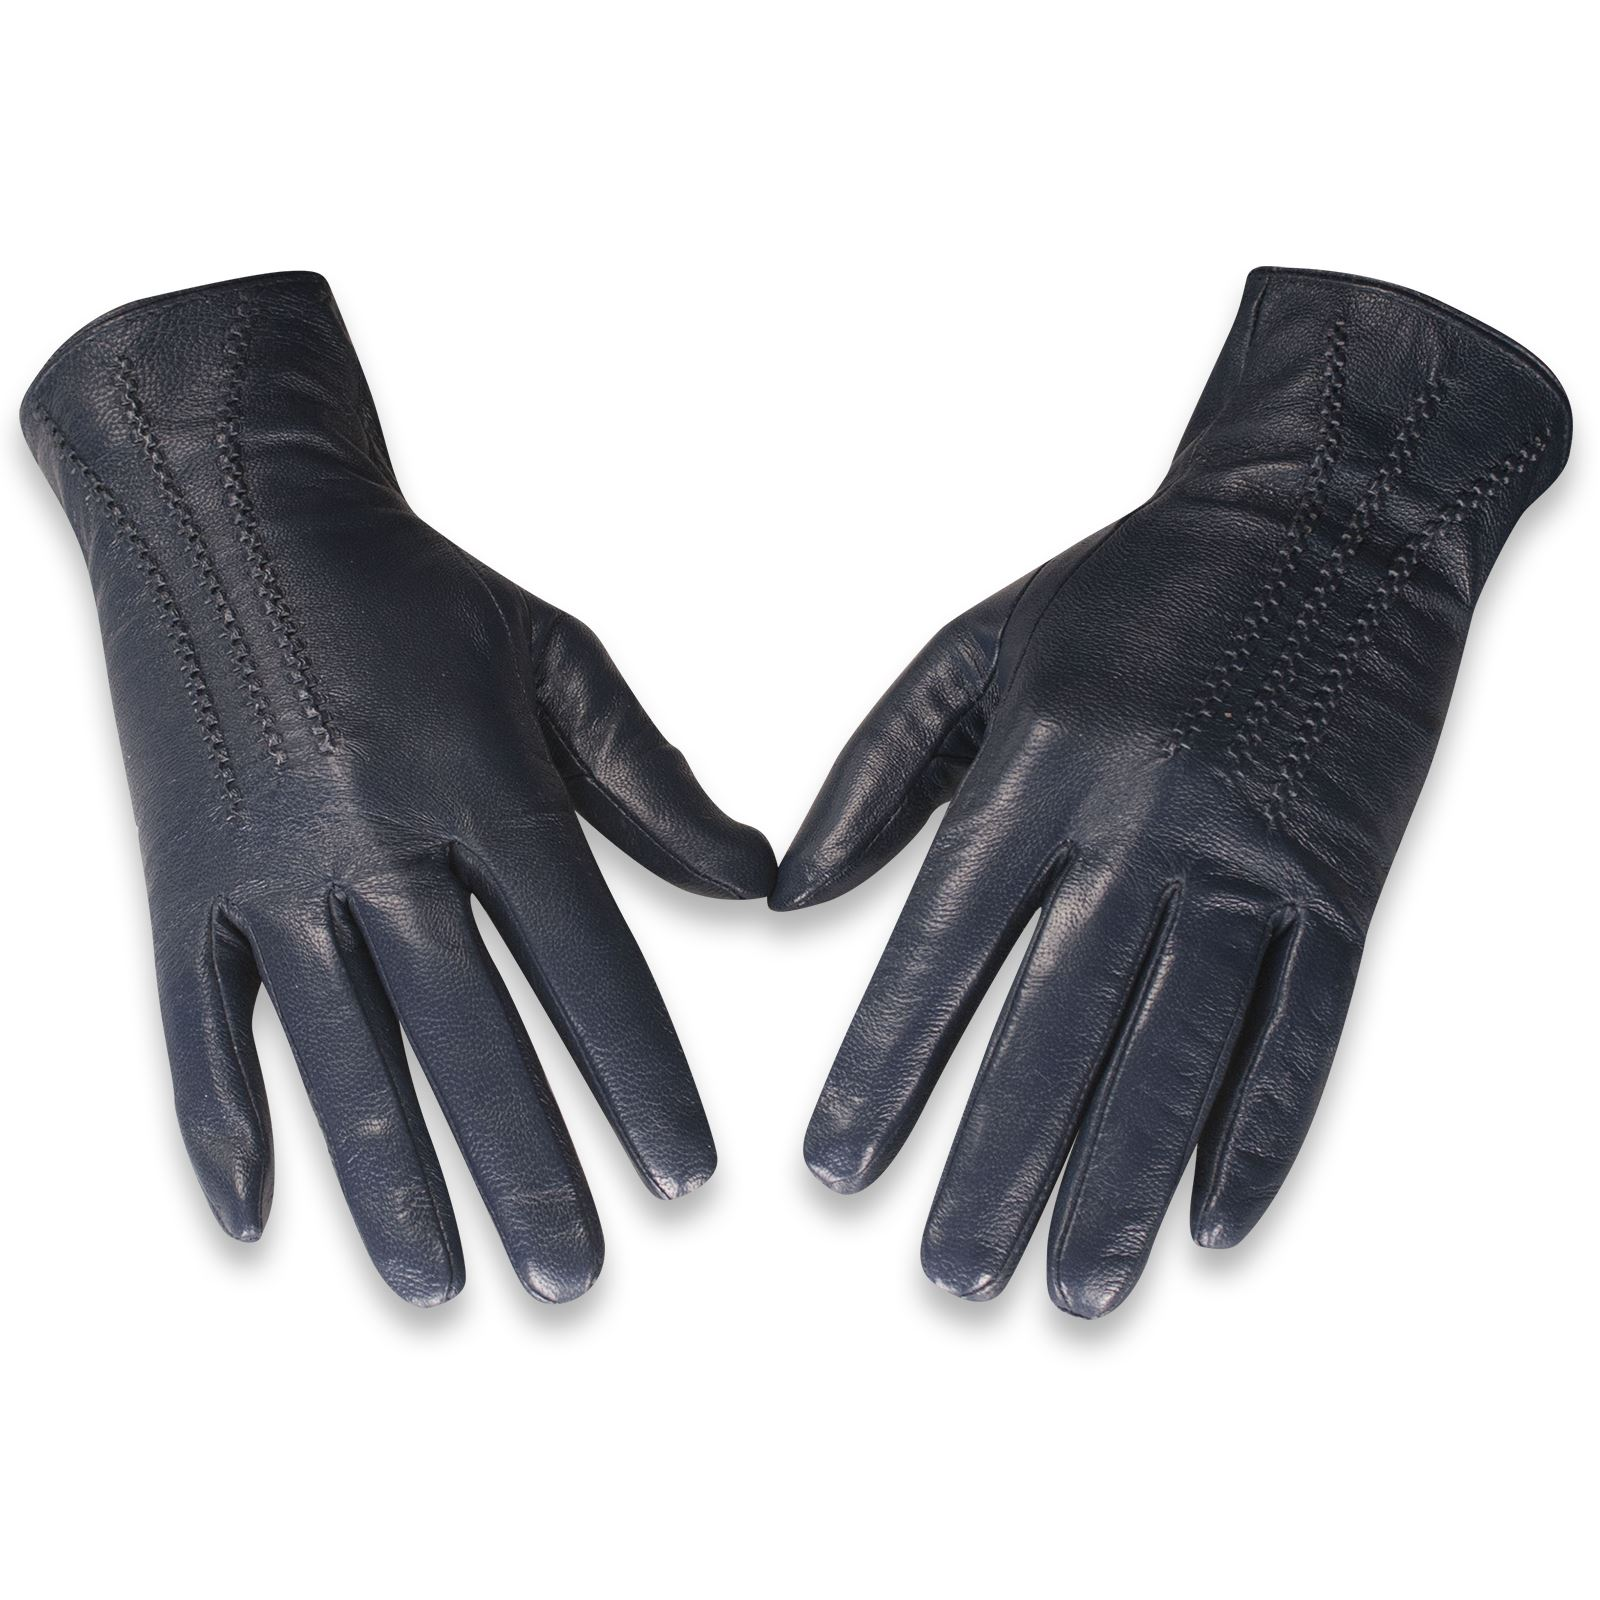 Womens Leather Gloves. Prepare for cool weather with women's leather erawtoir.gang a smooth fit and a sleek finish, leather gloves are cold weather accessories for all ensembles.